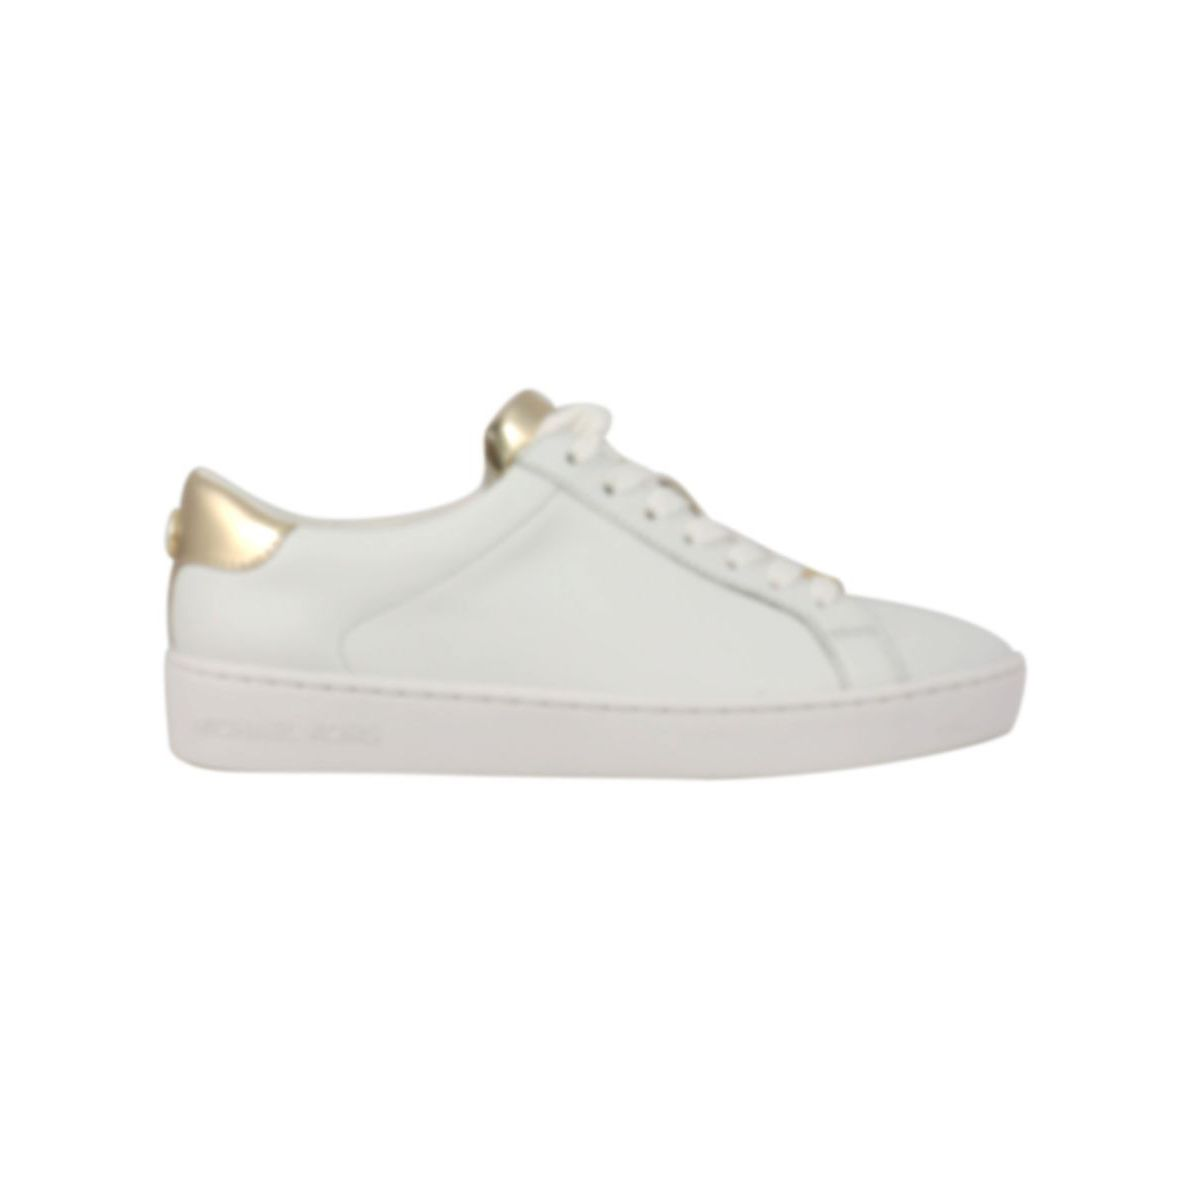 Irving lace up sneakers White Michael Kors